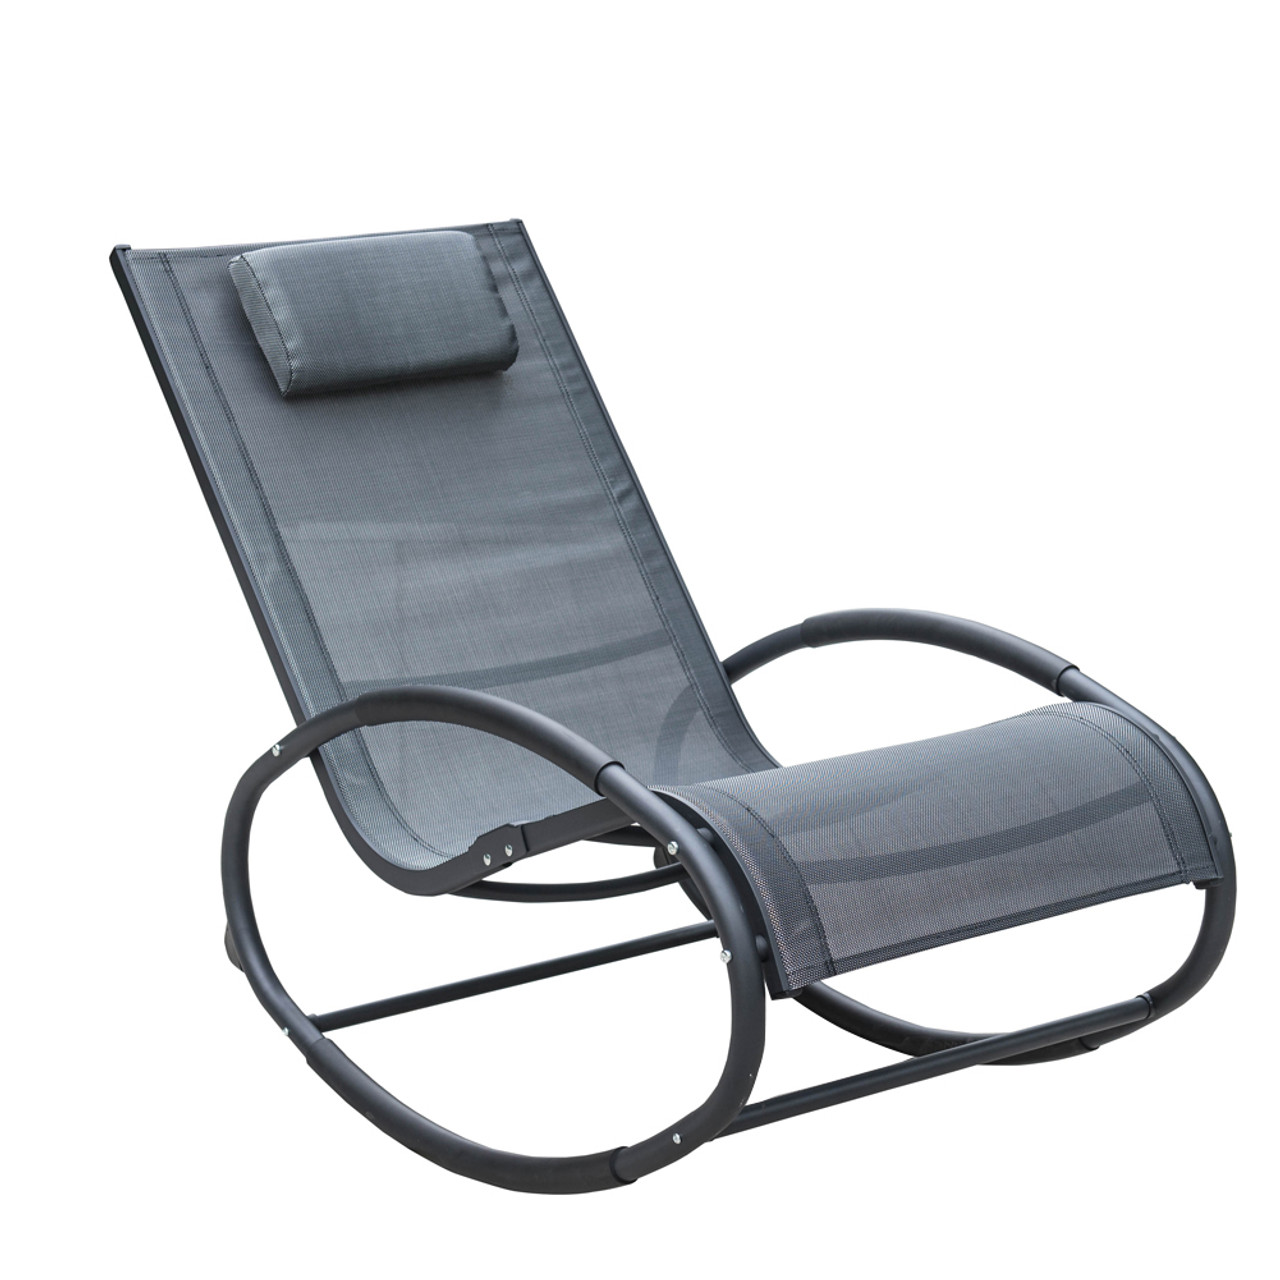 patio aluminum zero gravity chair orbital rocking lounge chair with 250 pounds - Zero Gravity Lounge Chair